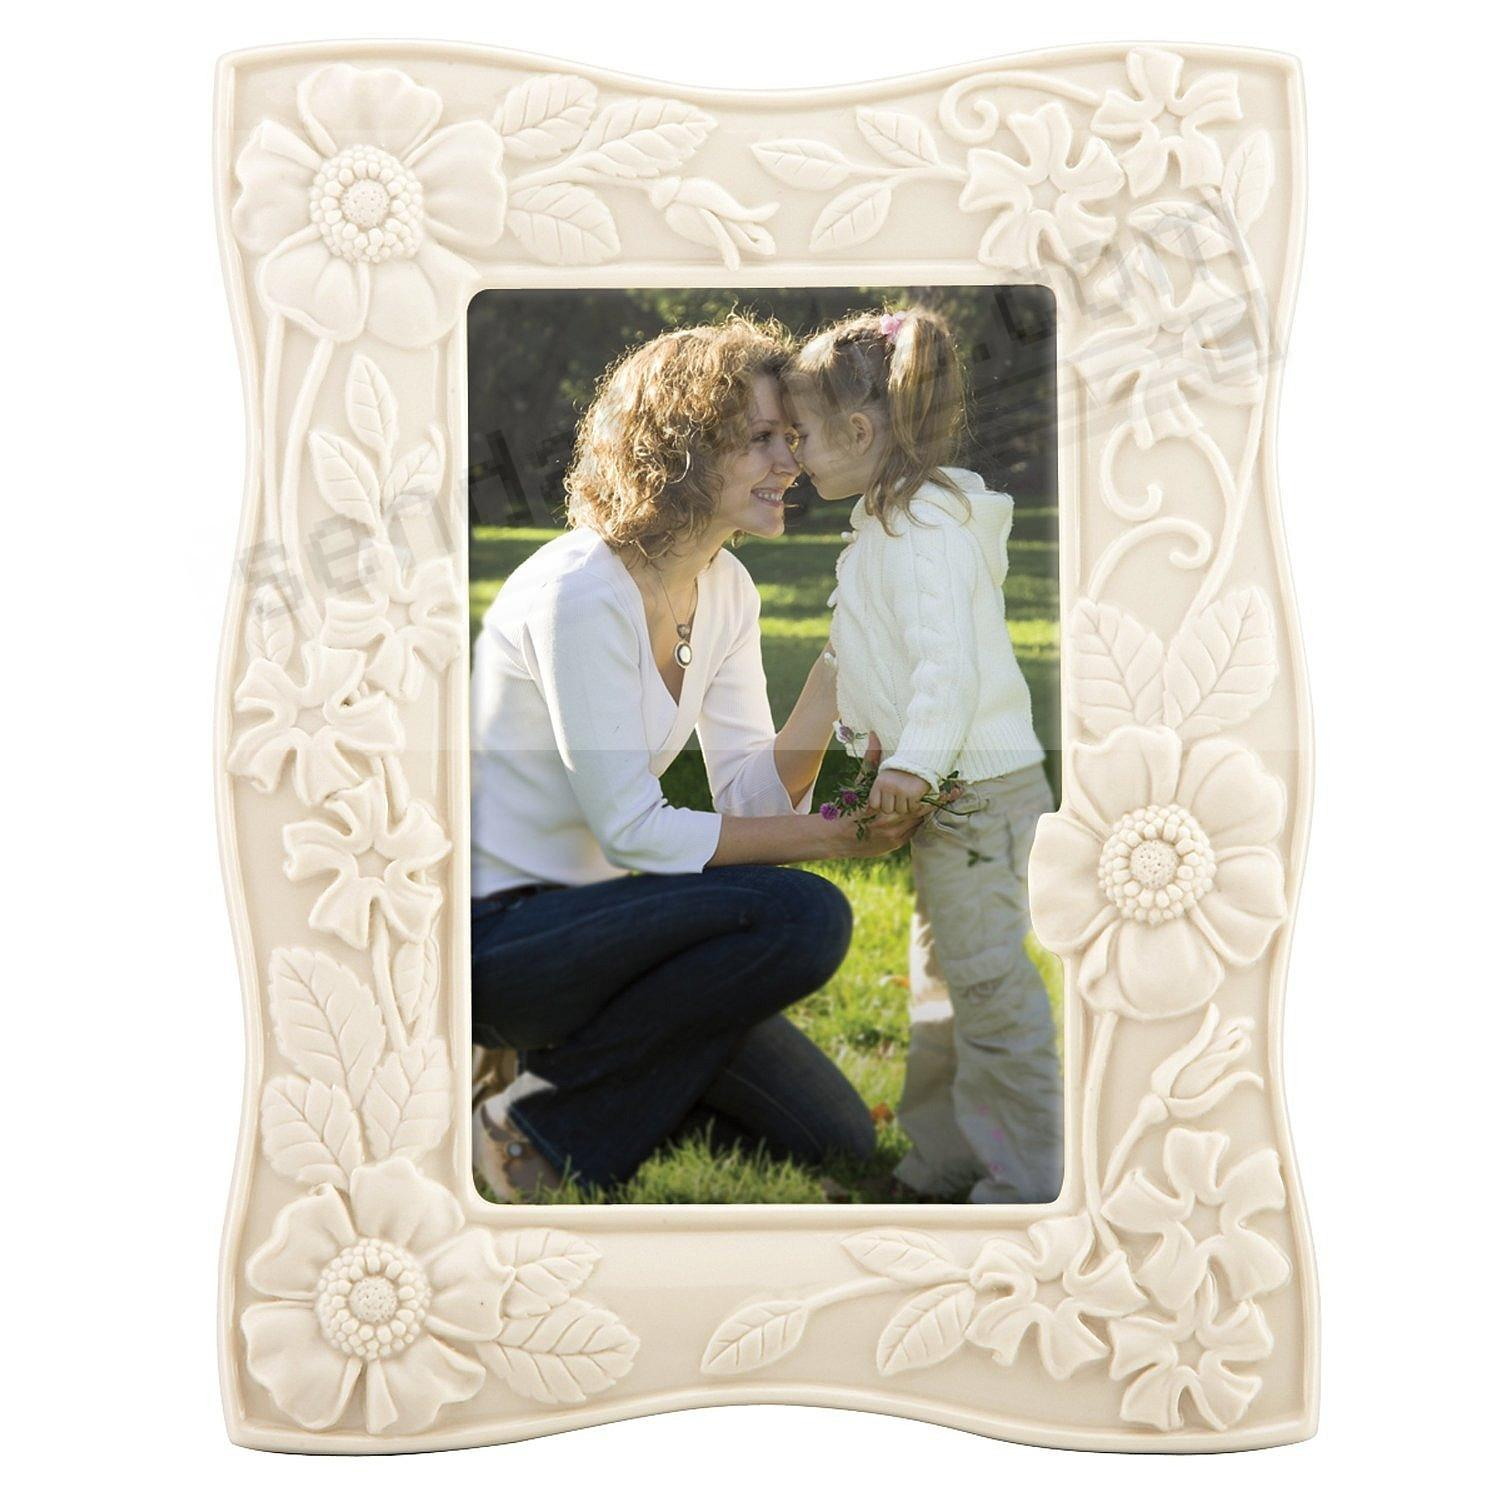 FLORAL FIELDS 4x6 Frame by Lenox® fine china - Picture Frames, Photo ...